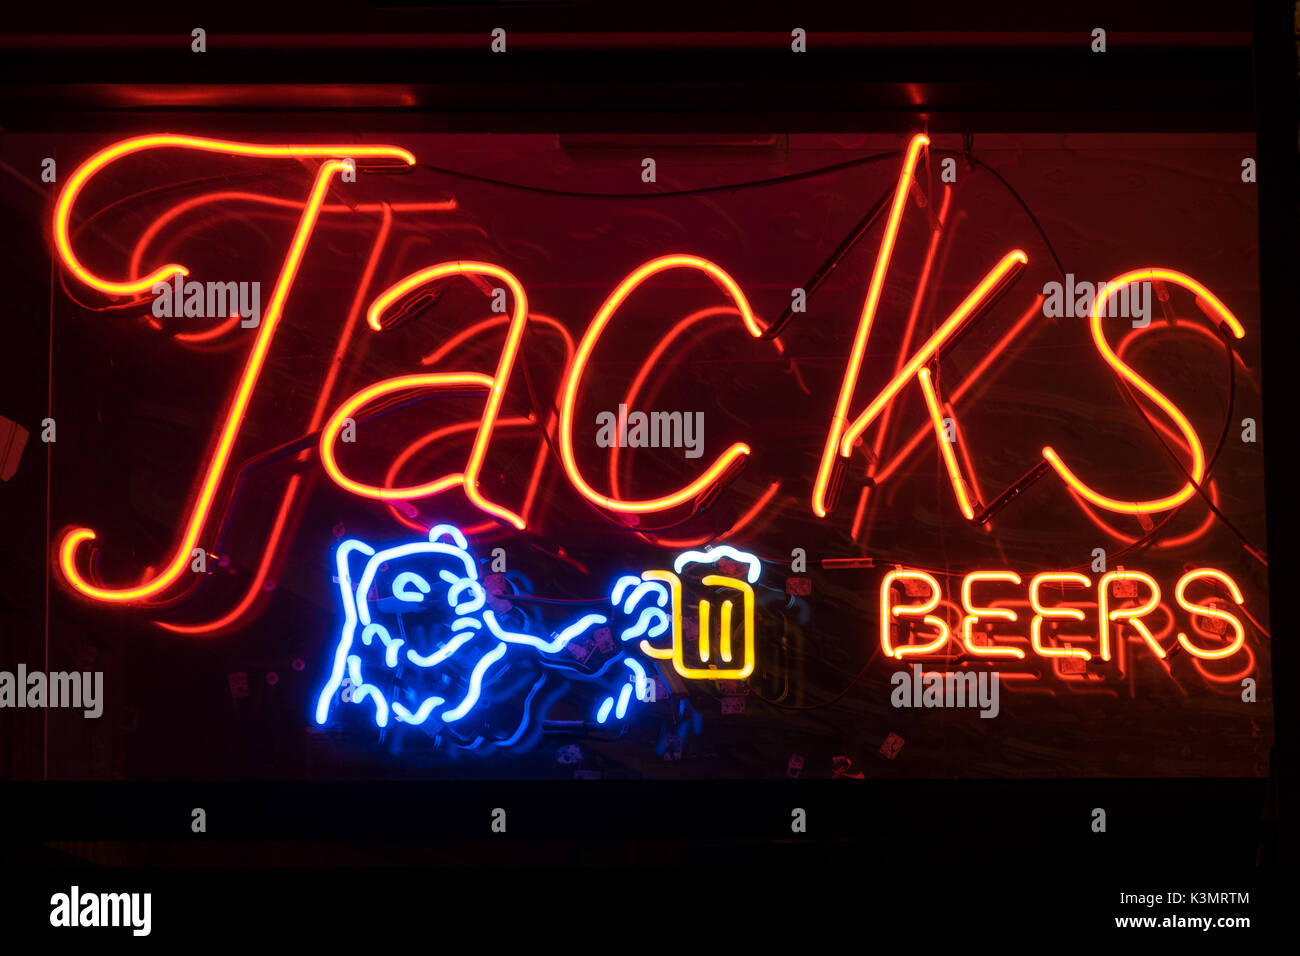 The neon sign of Jacks Cannery Bar (Jack's Cannery Bar), a longtime bar in Fisherman's Wharf, San Francisco, California. - Stock Image